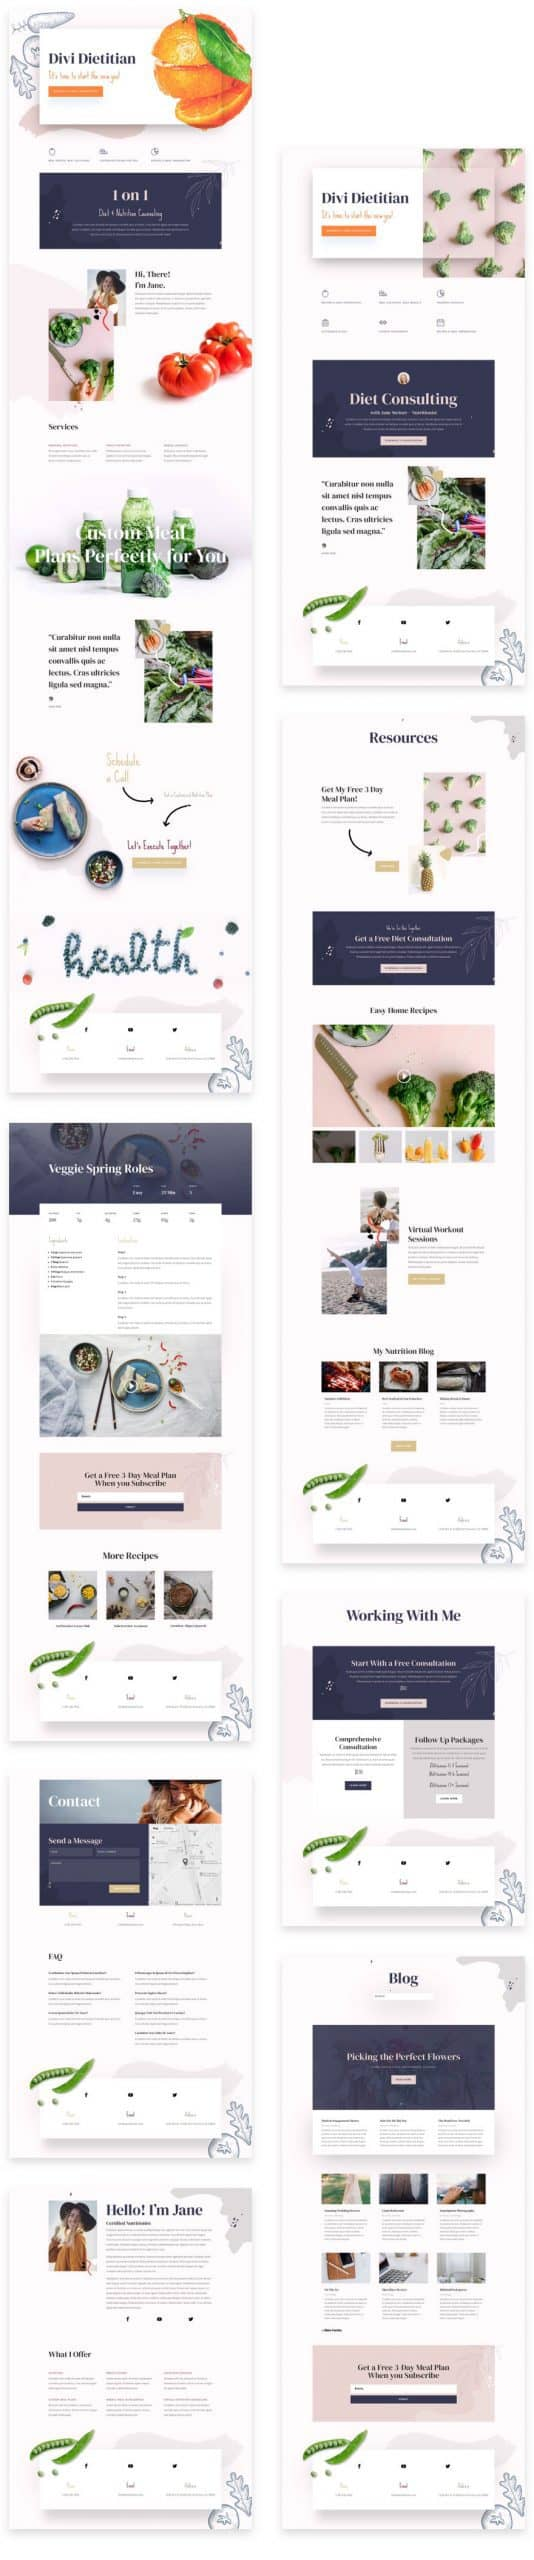 Dietitian Layout Pack